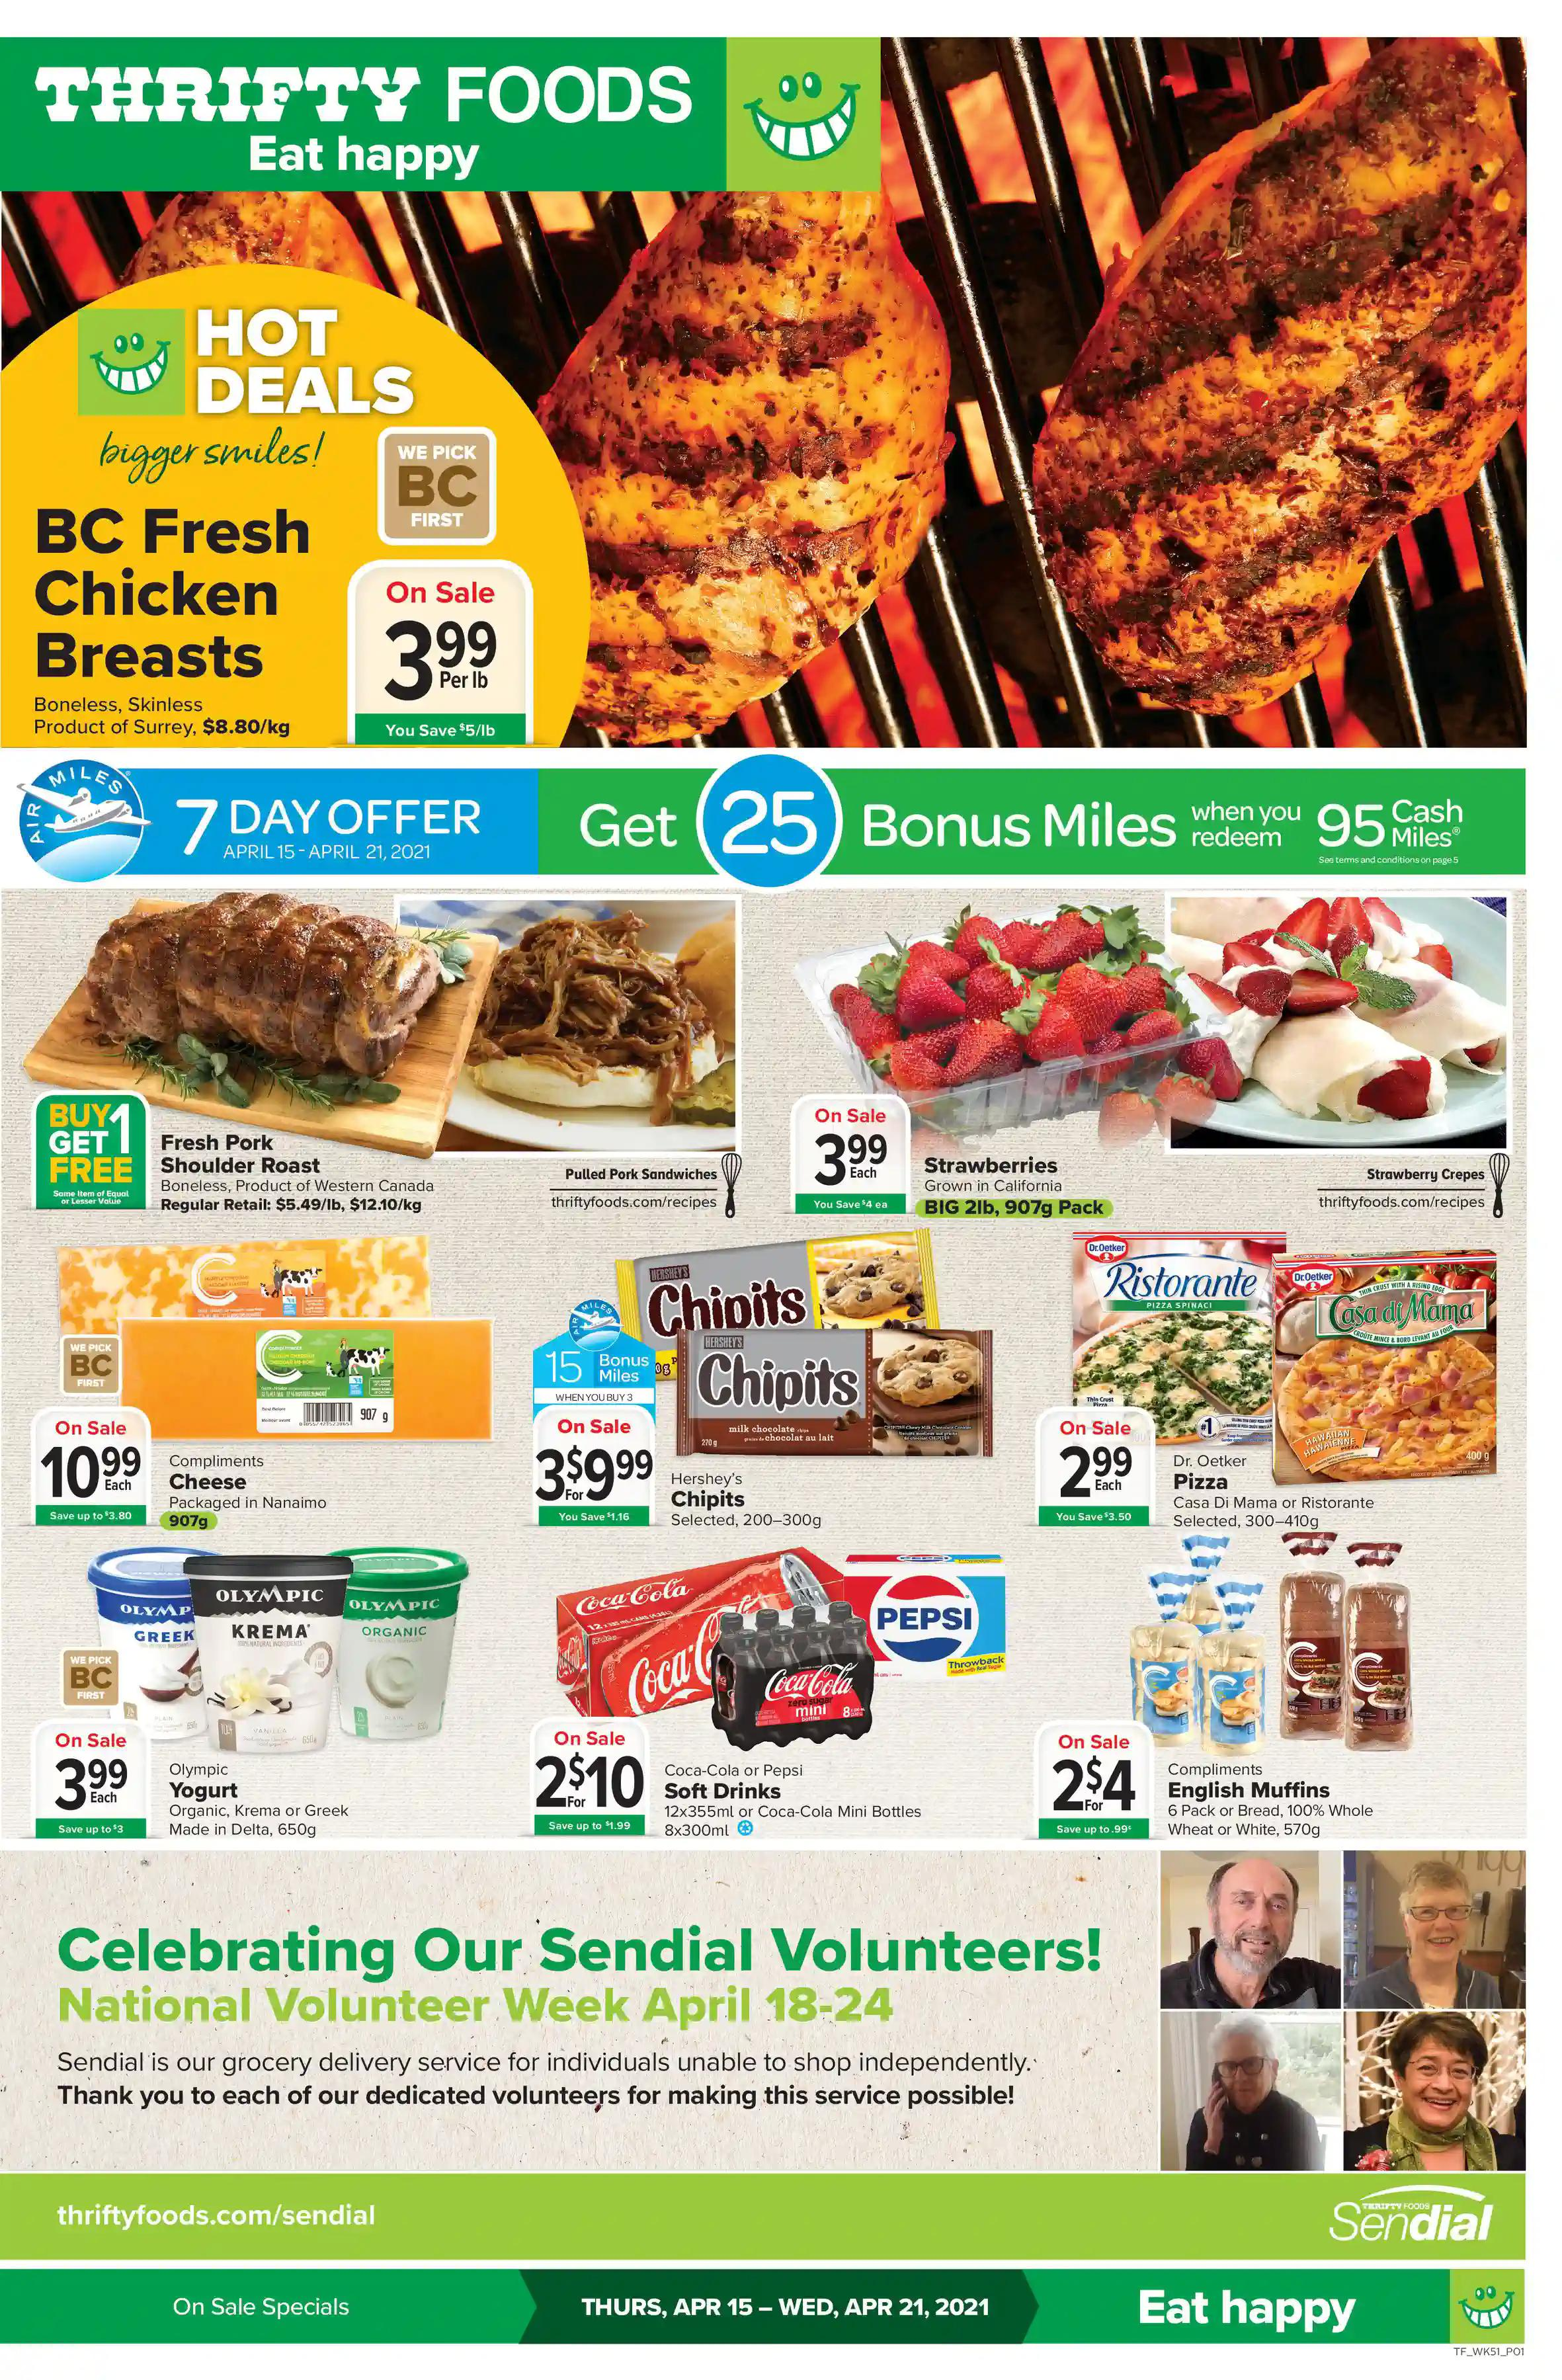 Thrifty Foods - Weekly Flyer Specials